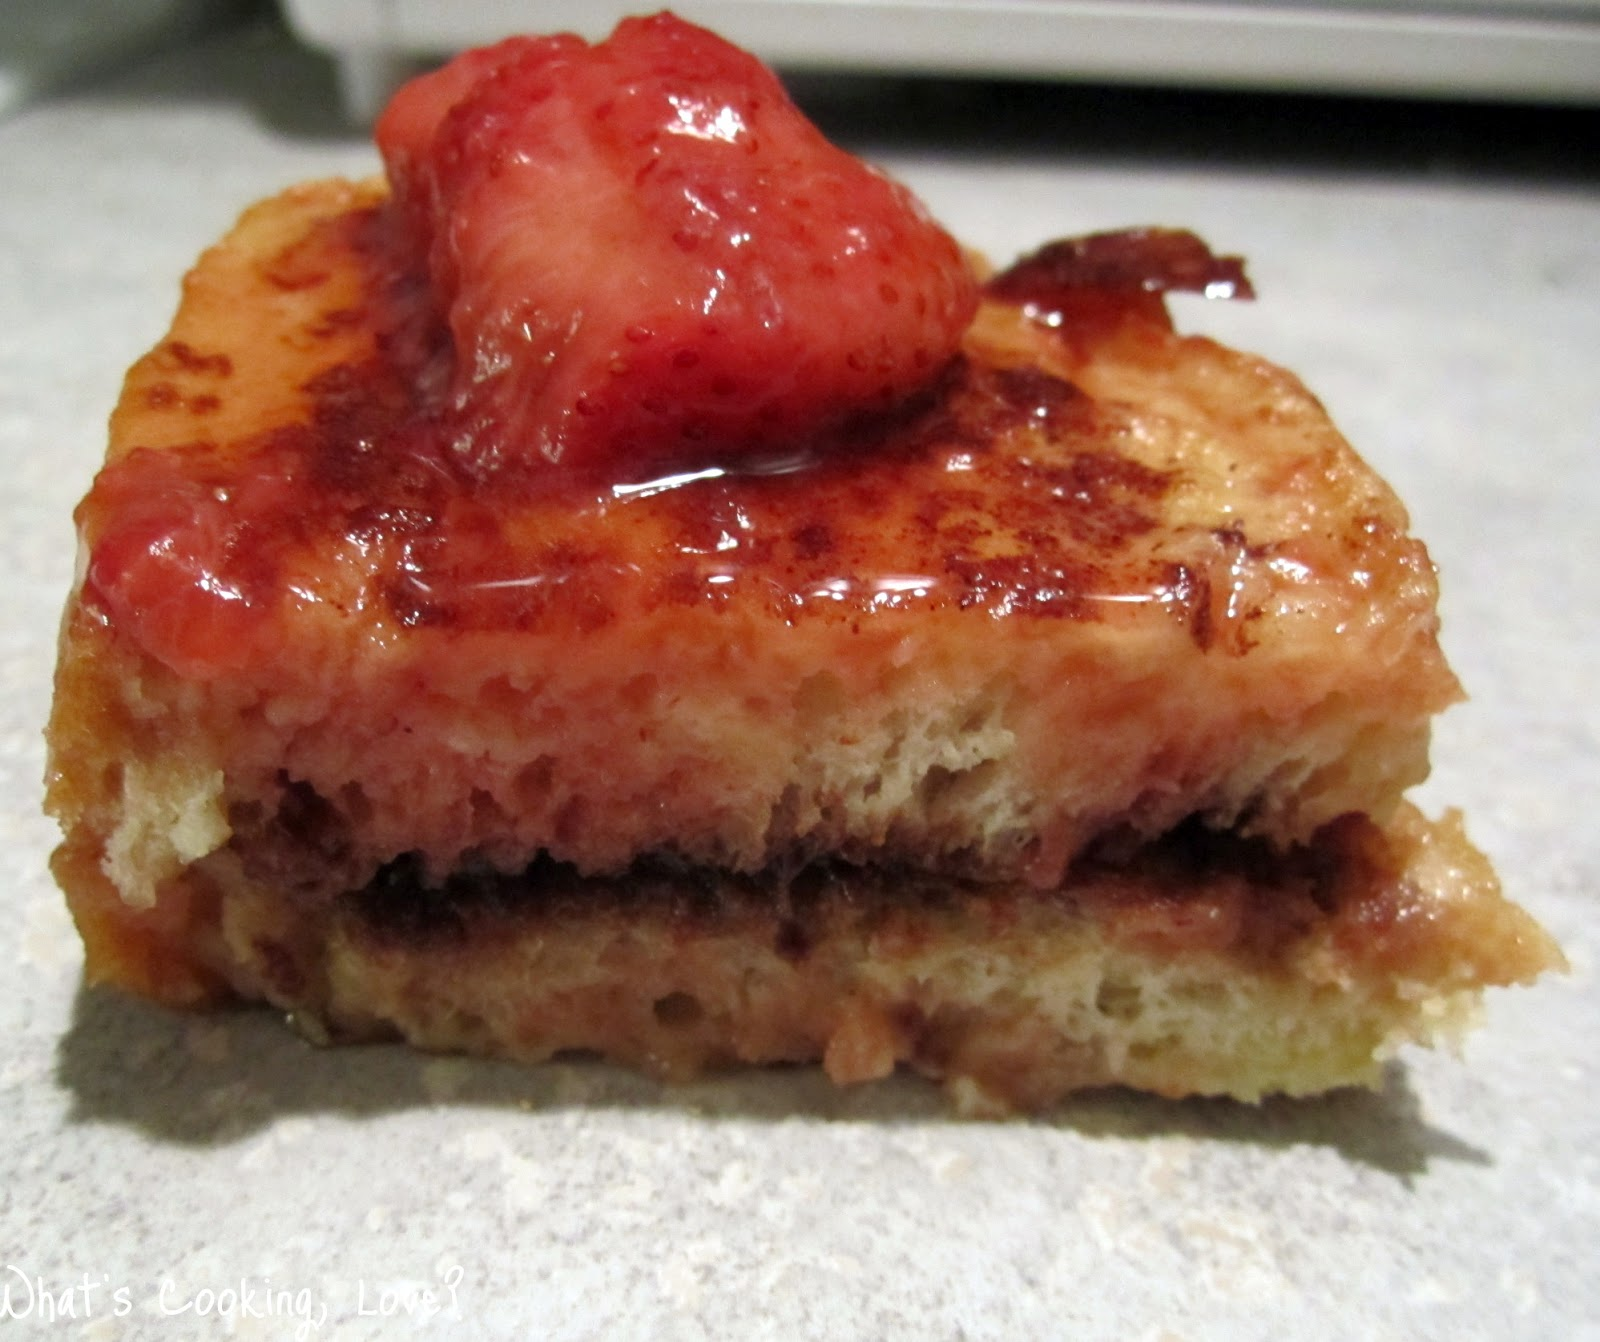 Nutella Stuffed French Toast with Strawberry Syrup - Whats Cooking ...